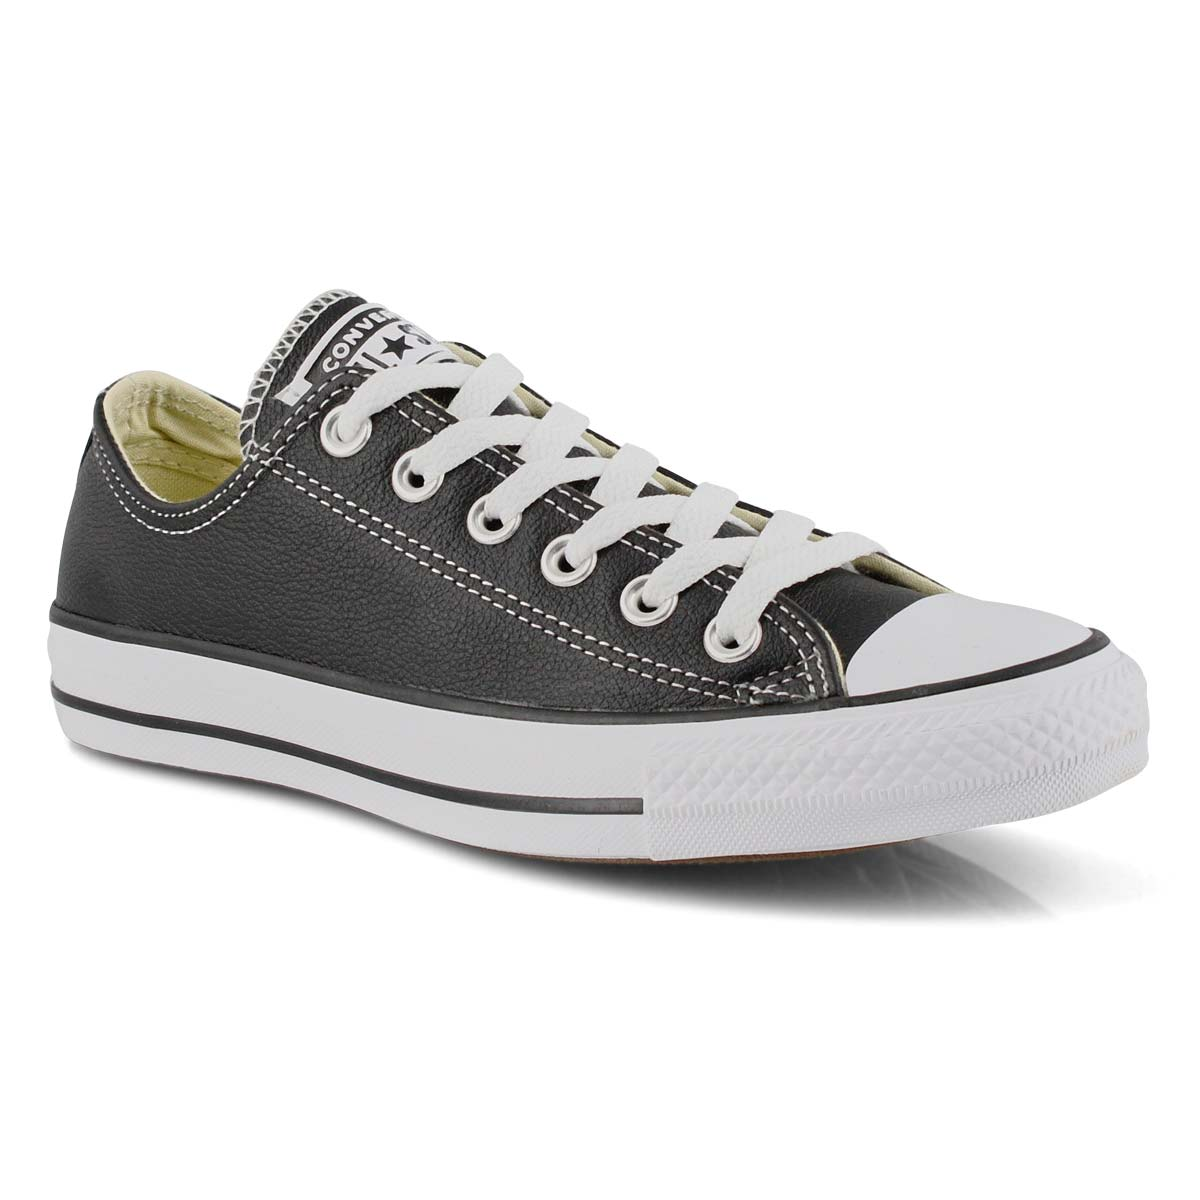 Lds CT All Star Leather black sneaker